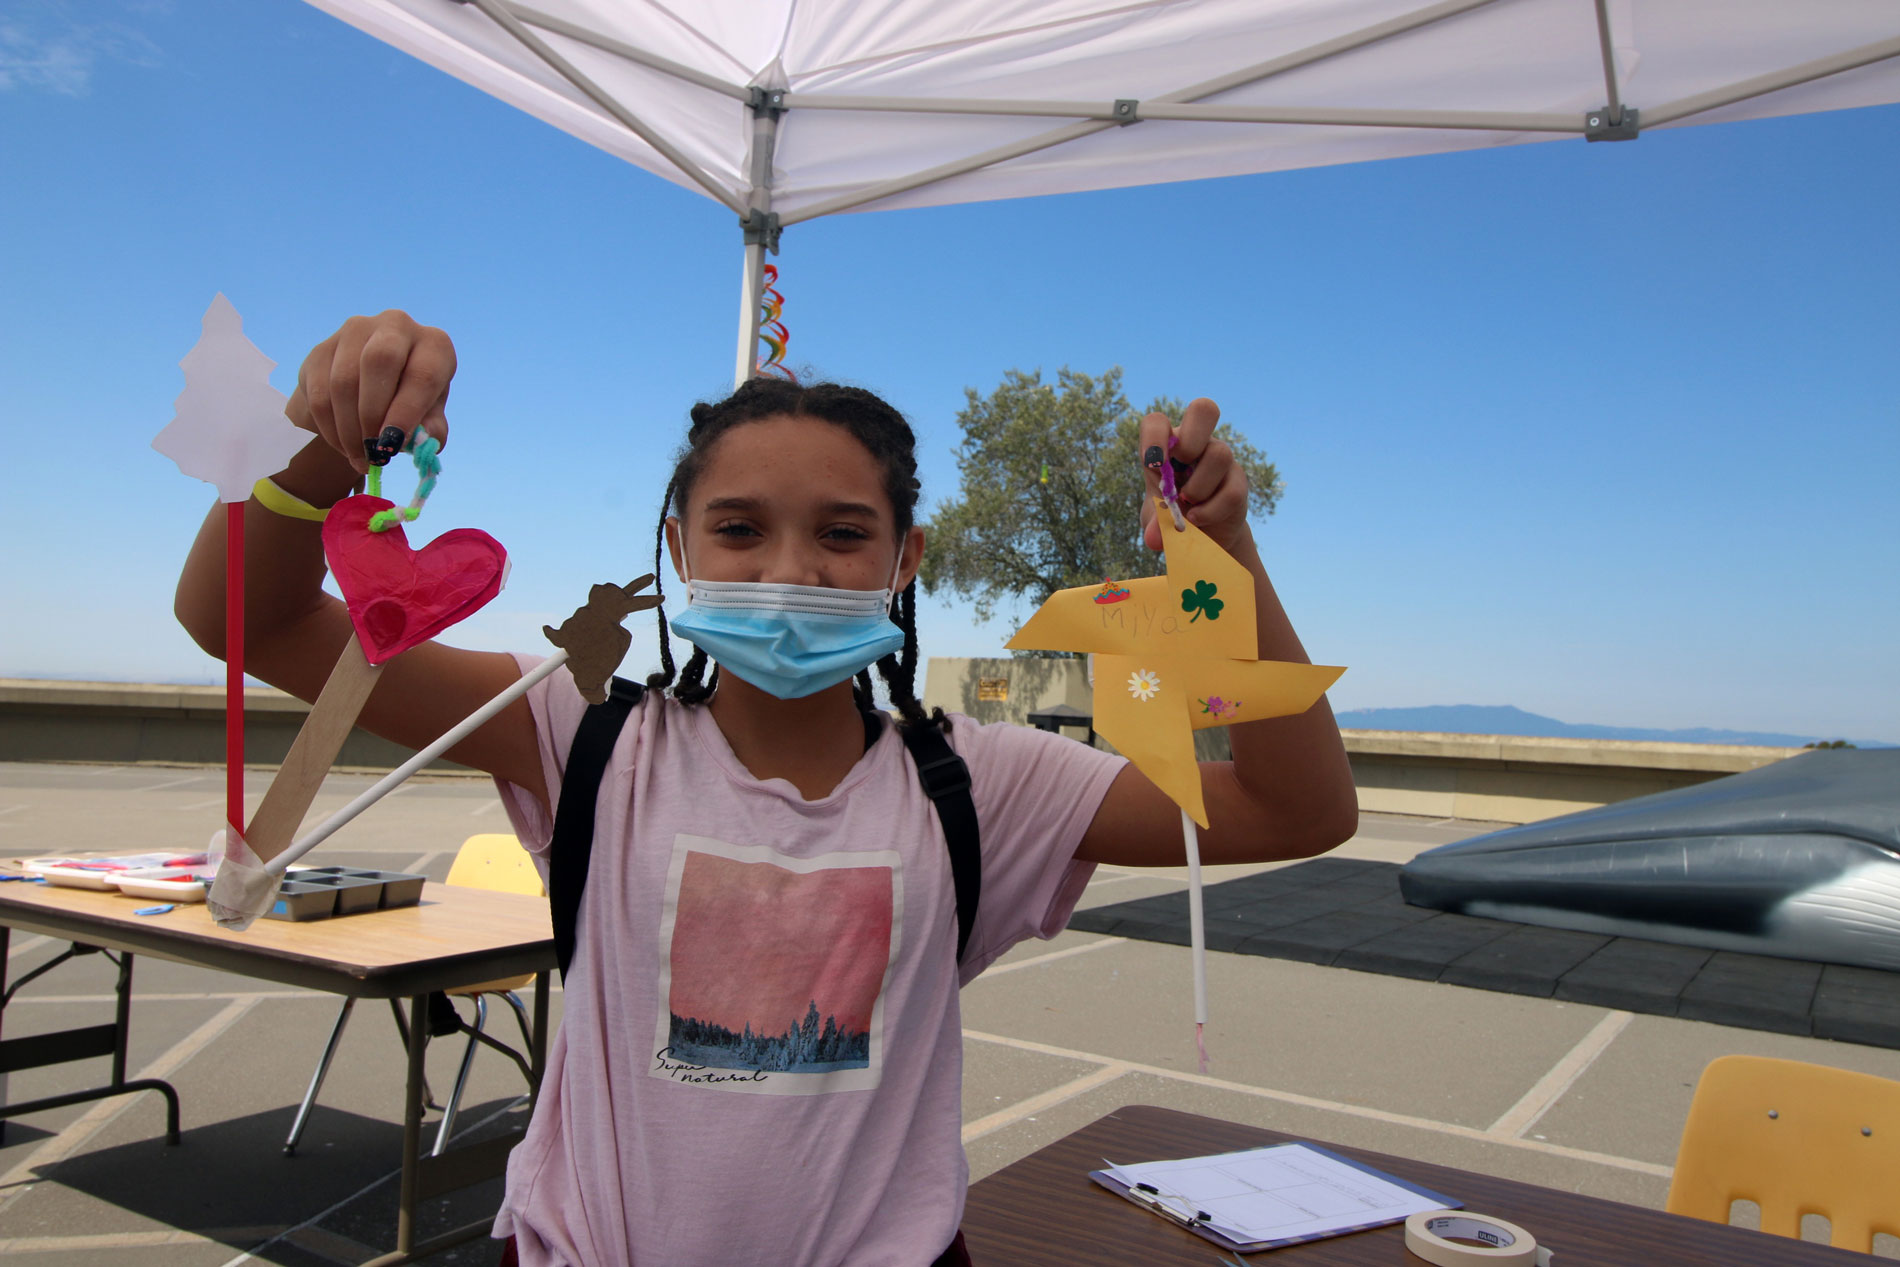 A young person holding up her paper sculptures she made during Summer Fundays